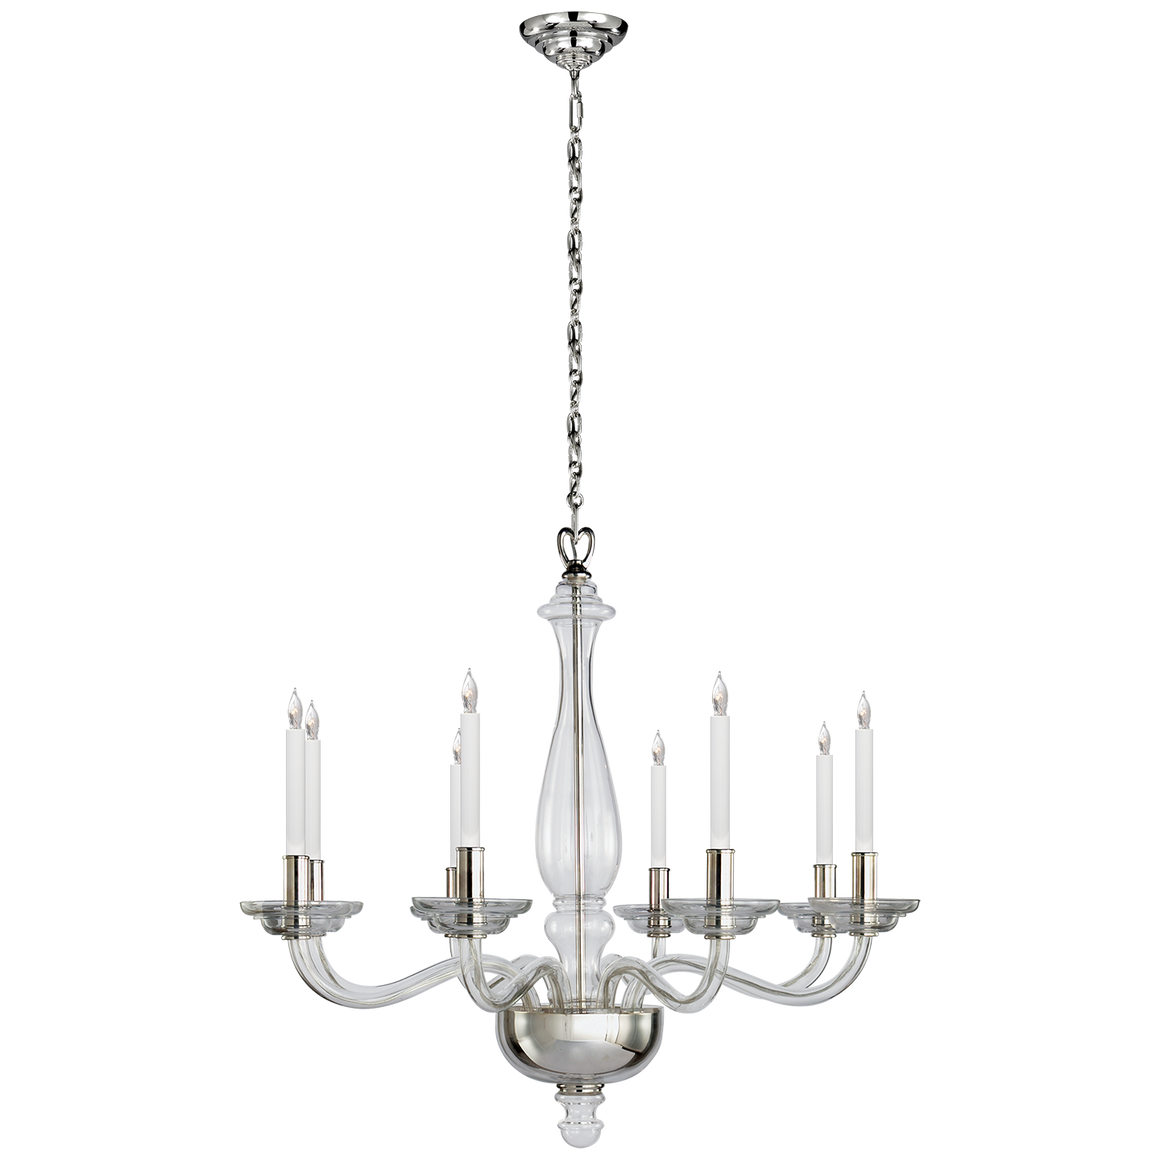 King george grande balustrade chandelier the lamplighter shoppe king george grande balustrade chandelier arubaitofo Images